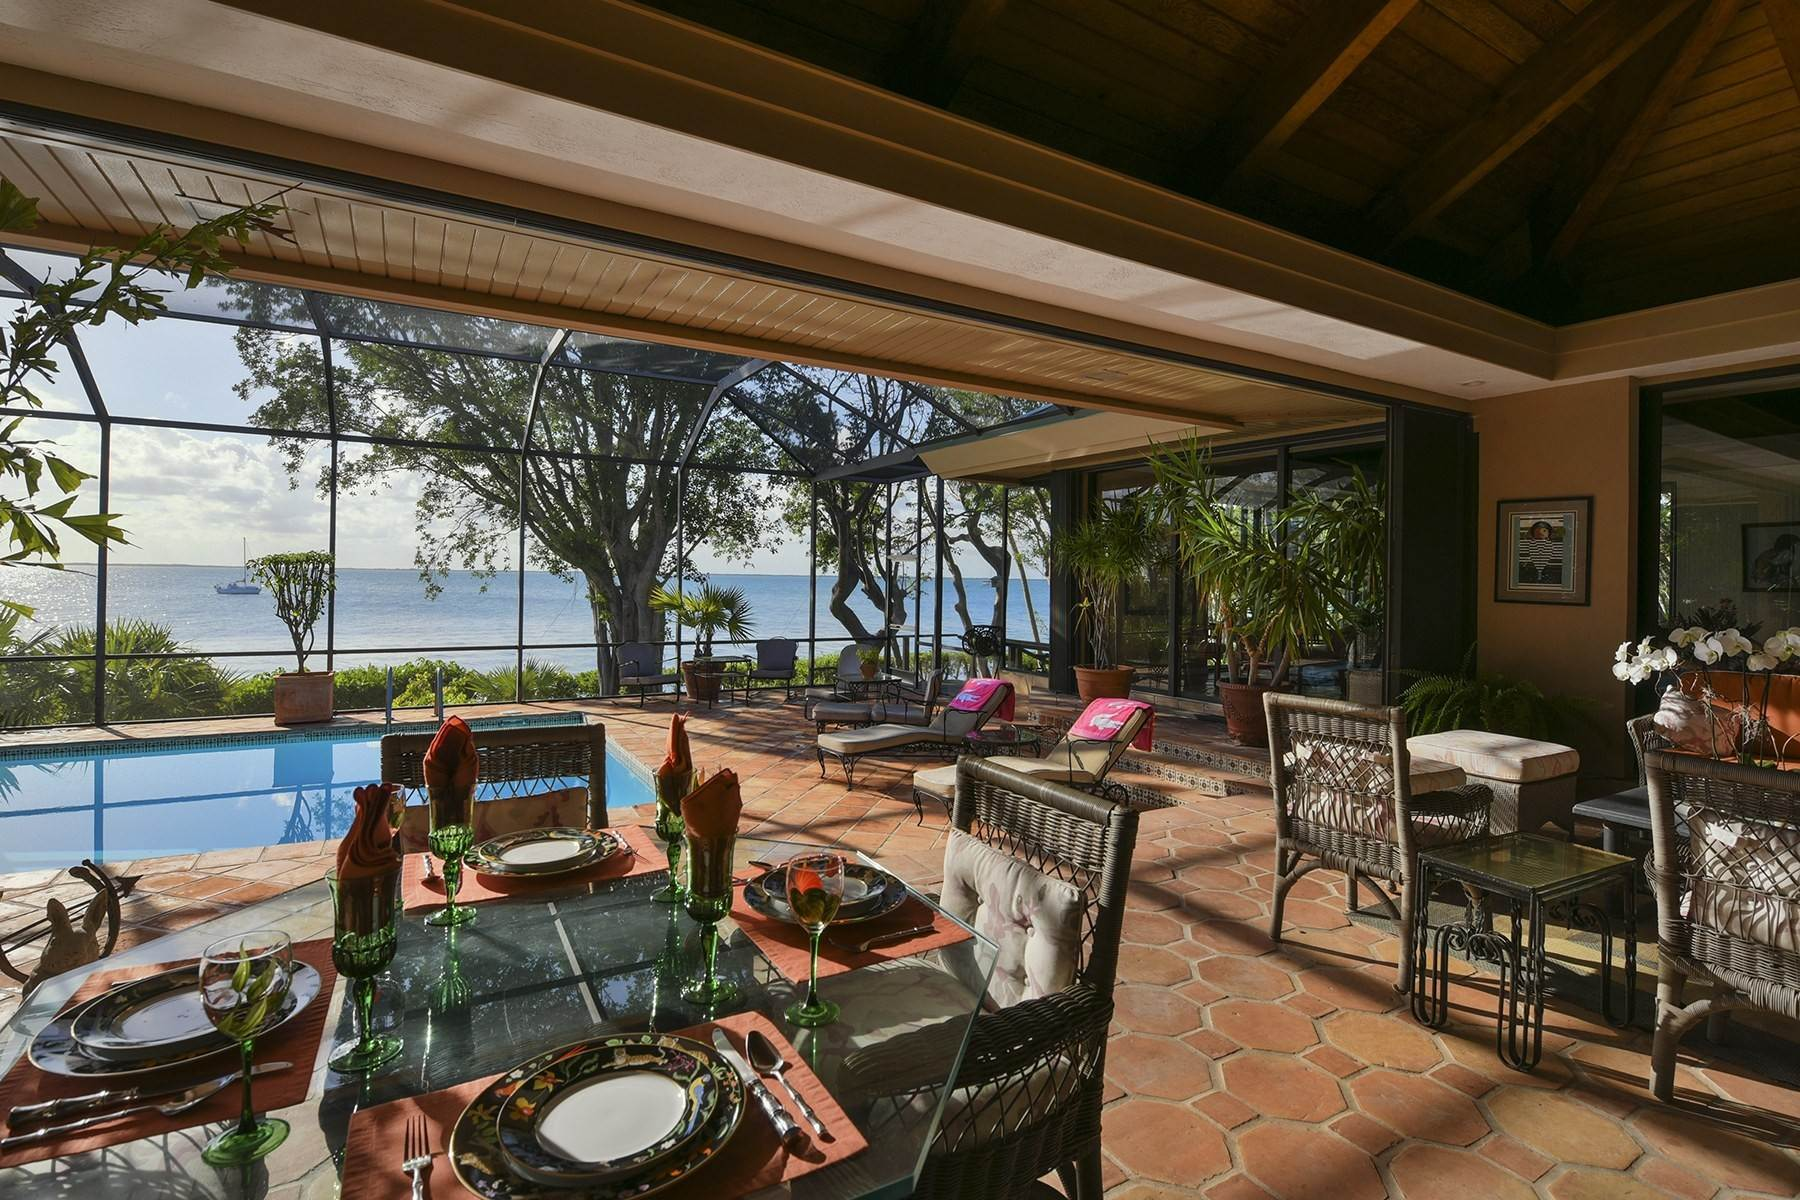 10. Property for Sale at Pumpkin Key - Private Island, Key Largo, FL Pumpkin Key - Private Island Key Largo, Florida 33037 United States